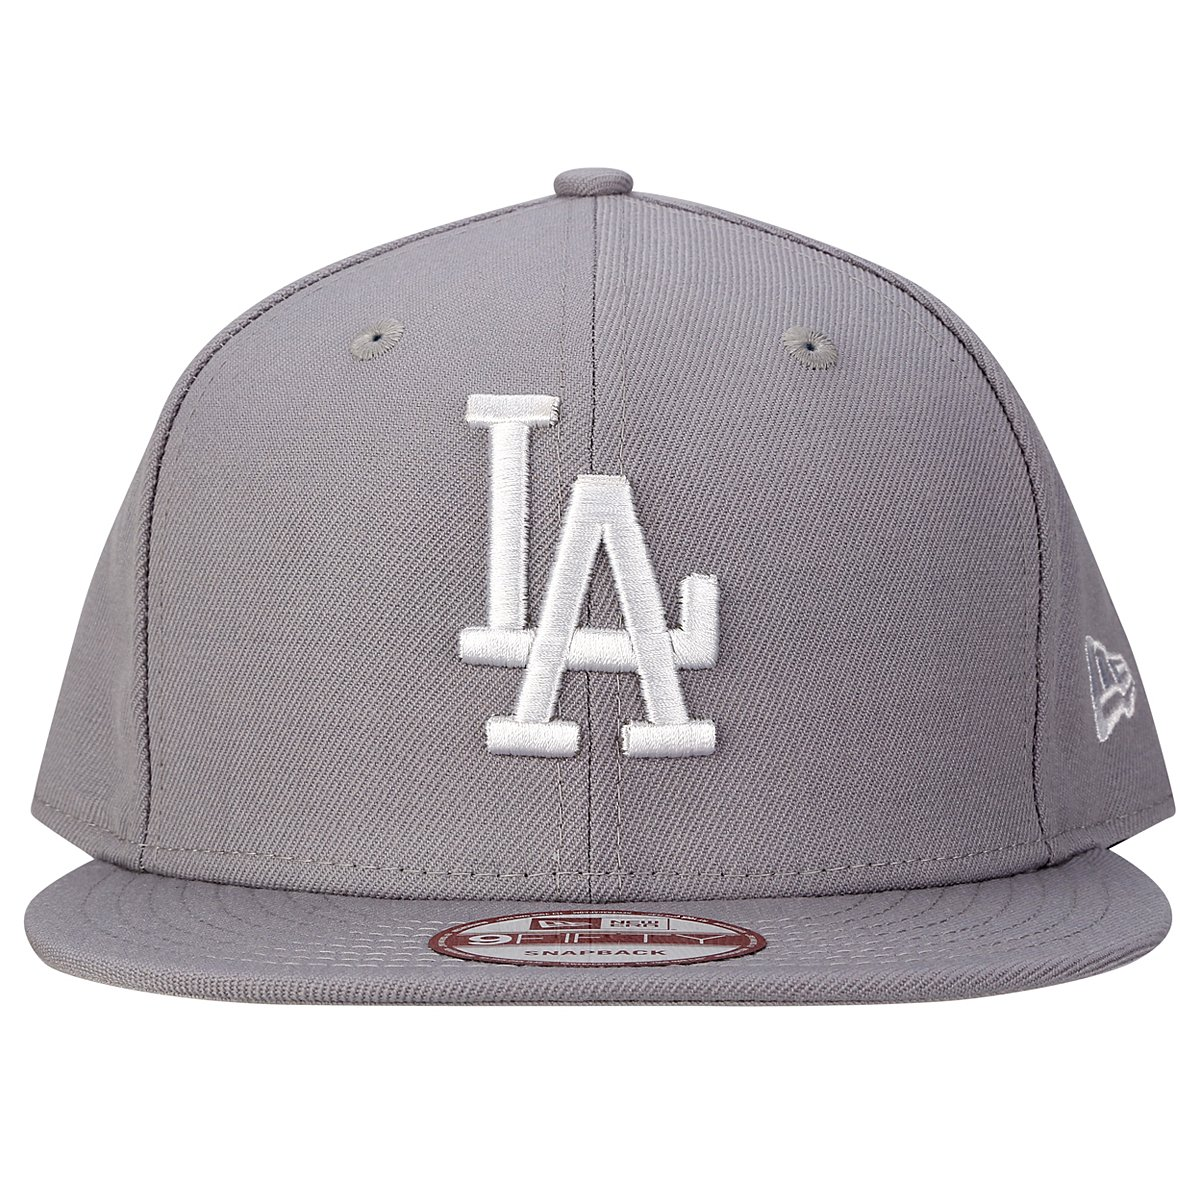 Boné New Era 950 Los Angeles Dodgers 6016dce16ec